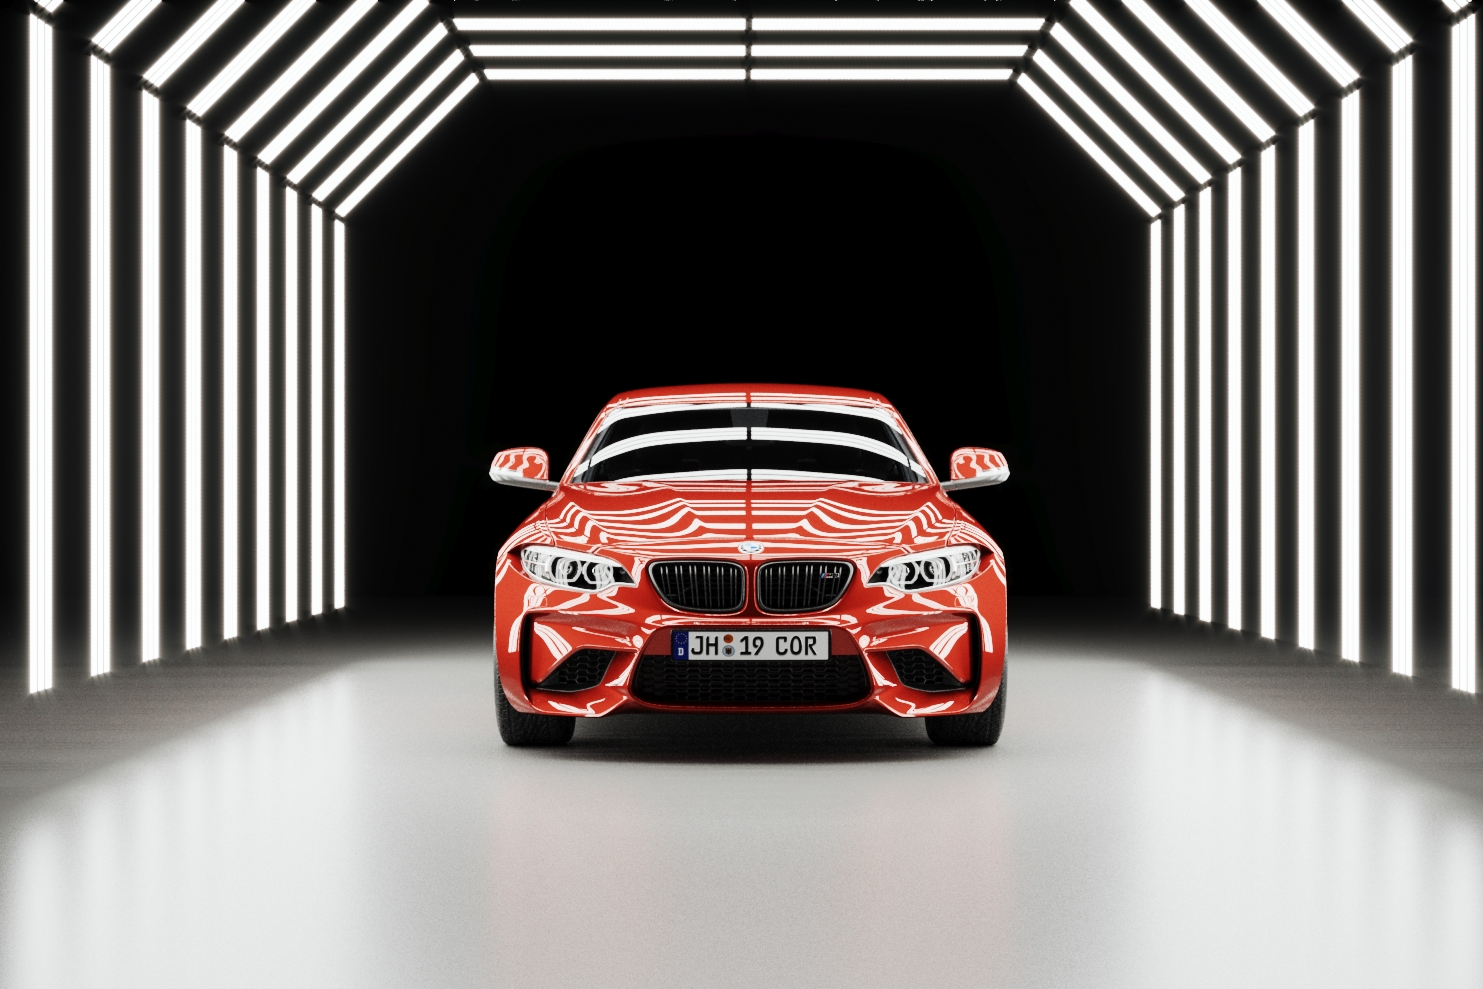 Red BMW M2 render in light tunnel with reflections